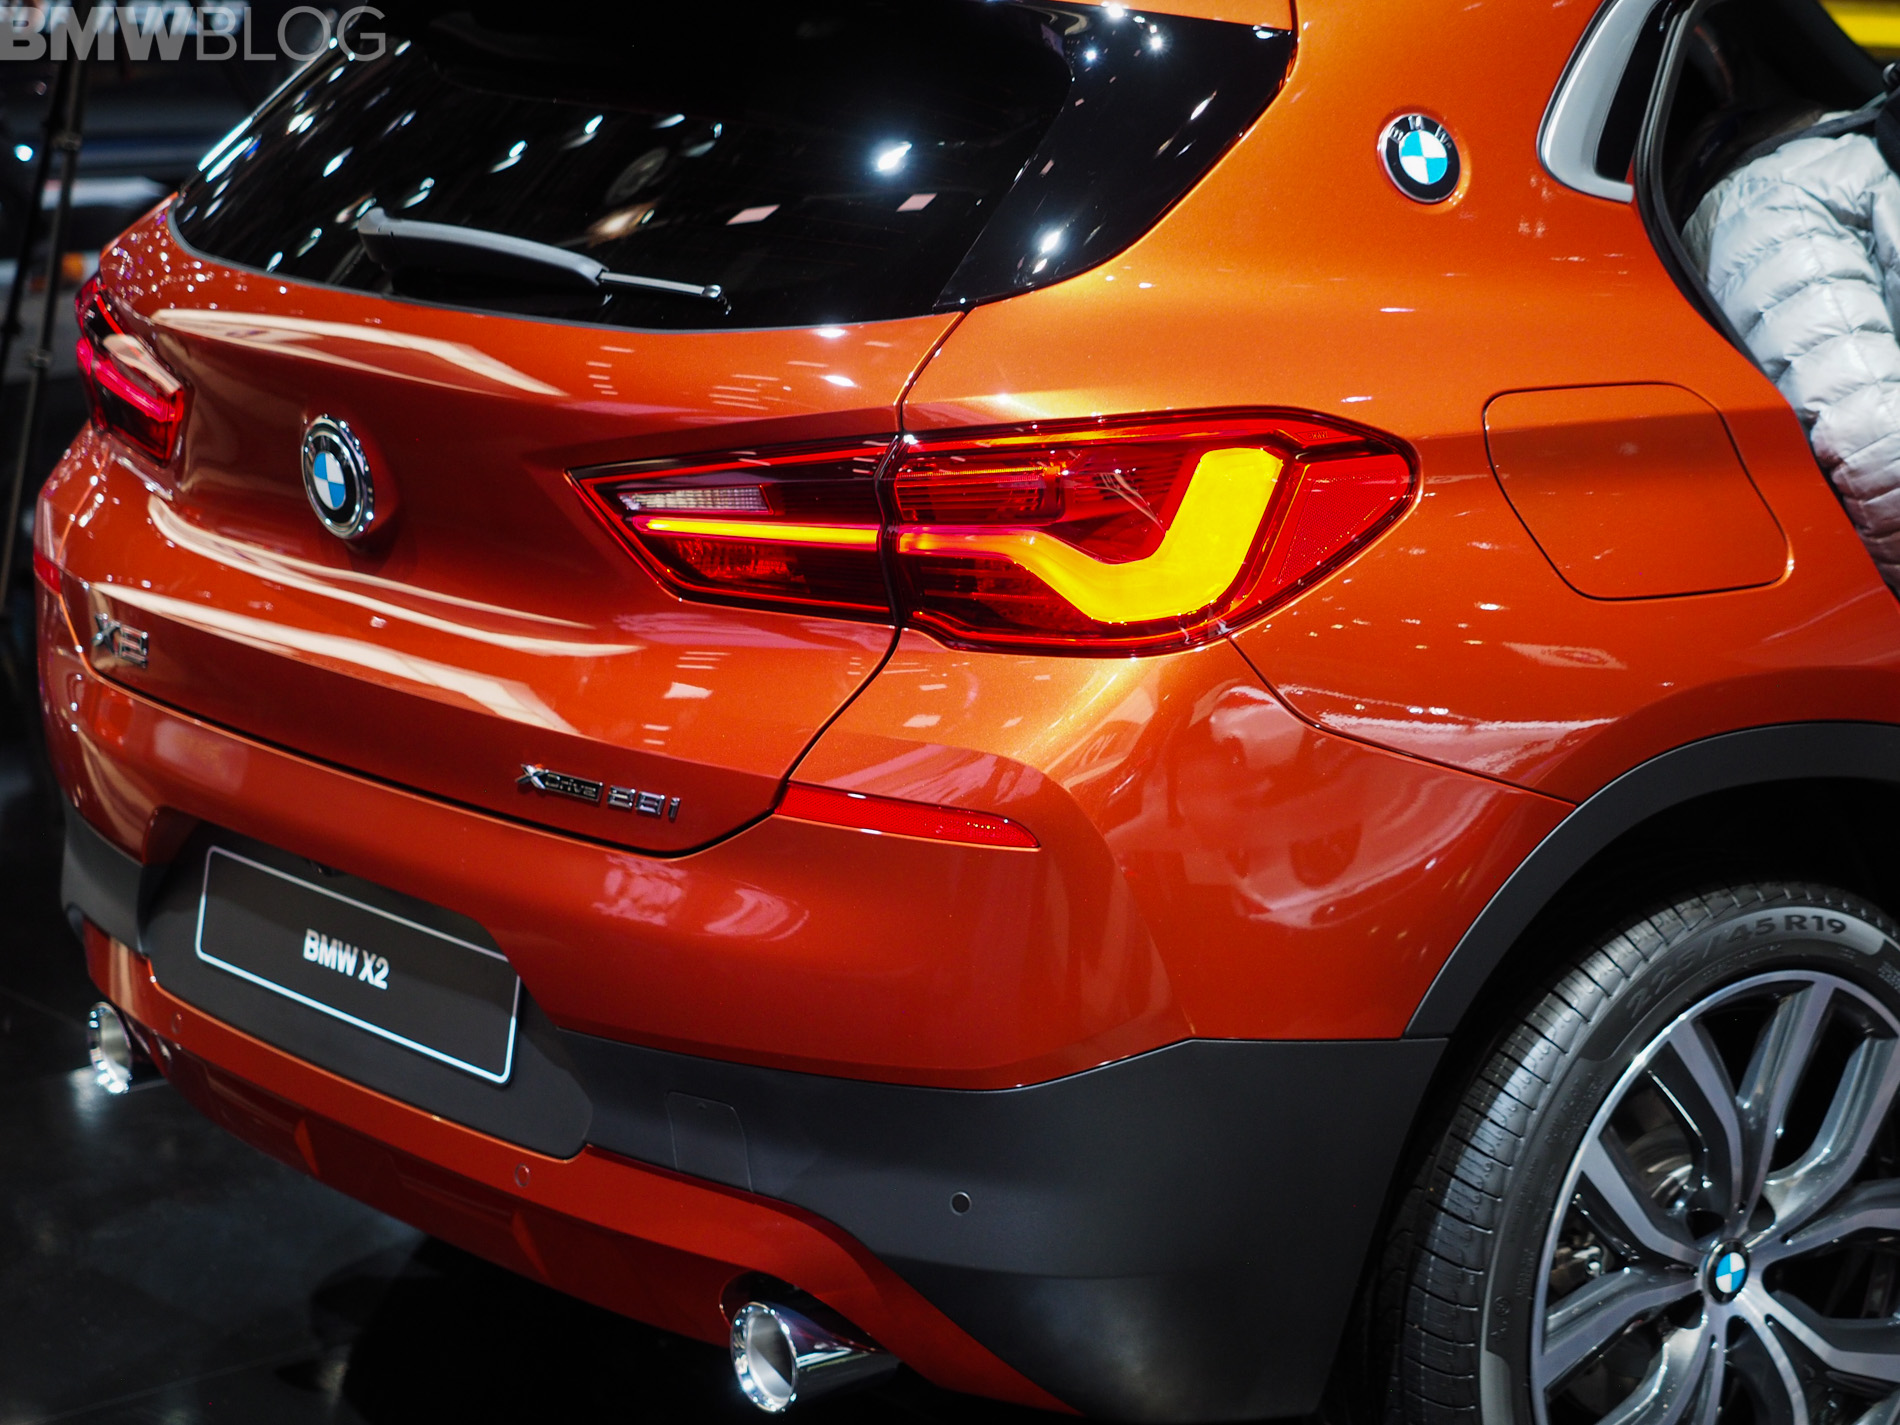 2018 Detroit Auto Show Bmw X2 In Sunset Orange